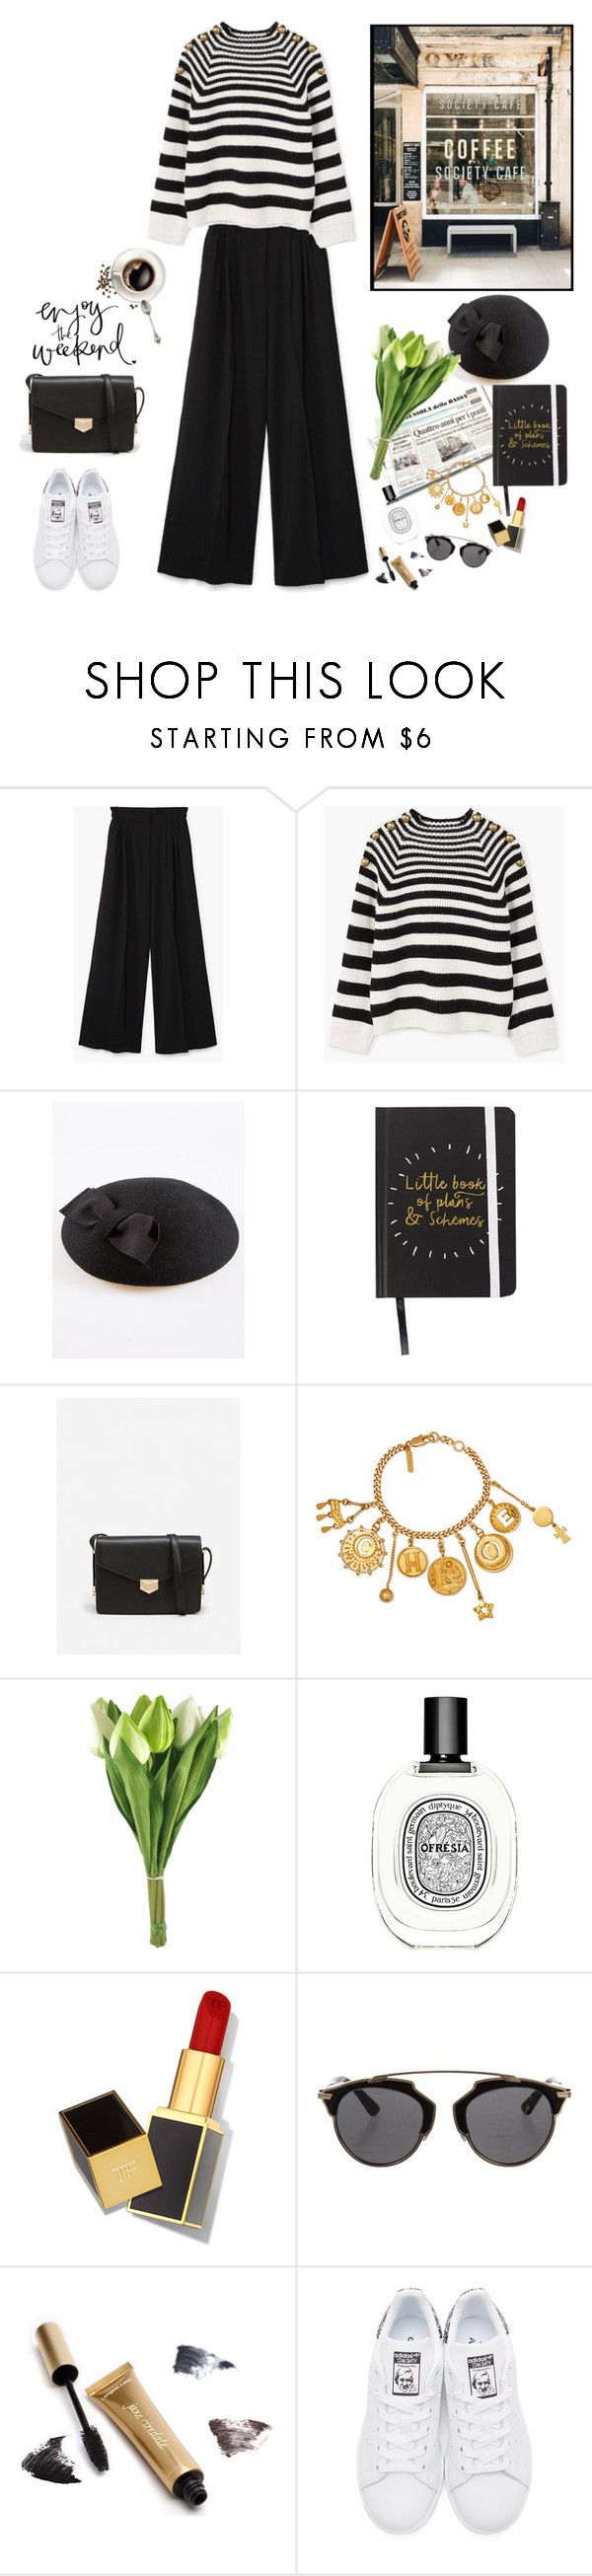 """""""Weekend ready"""" by nadi ❤ liked on Polyvore featuring MANGO, Pronto Moda, Chloé, Diptyque, Tom Ford, Christian Dior, Jane Iredale and adidas Originals"""